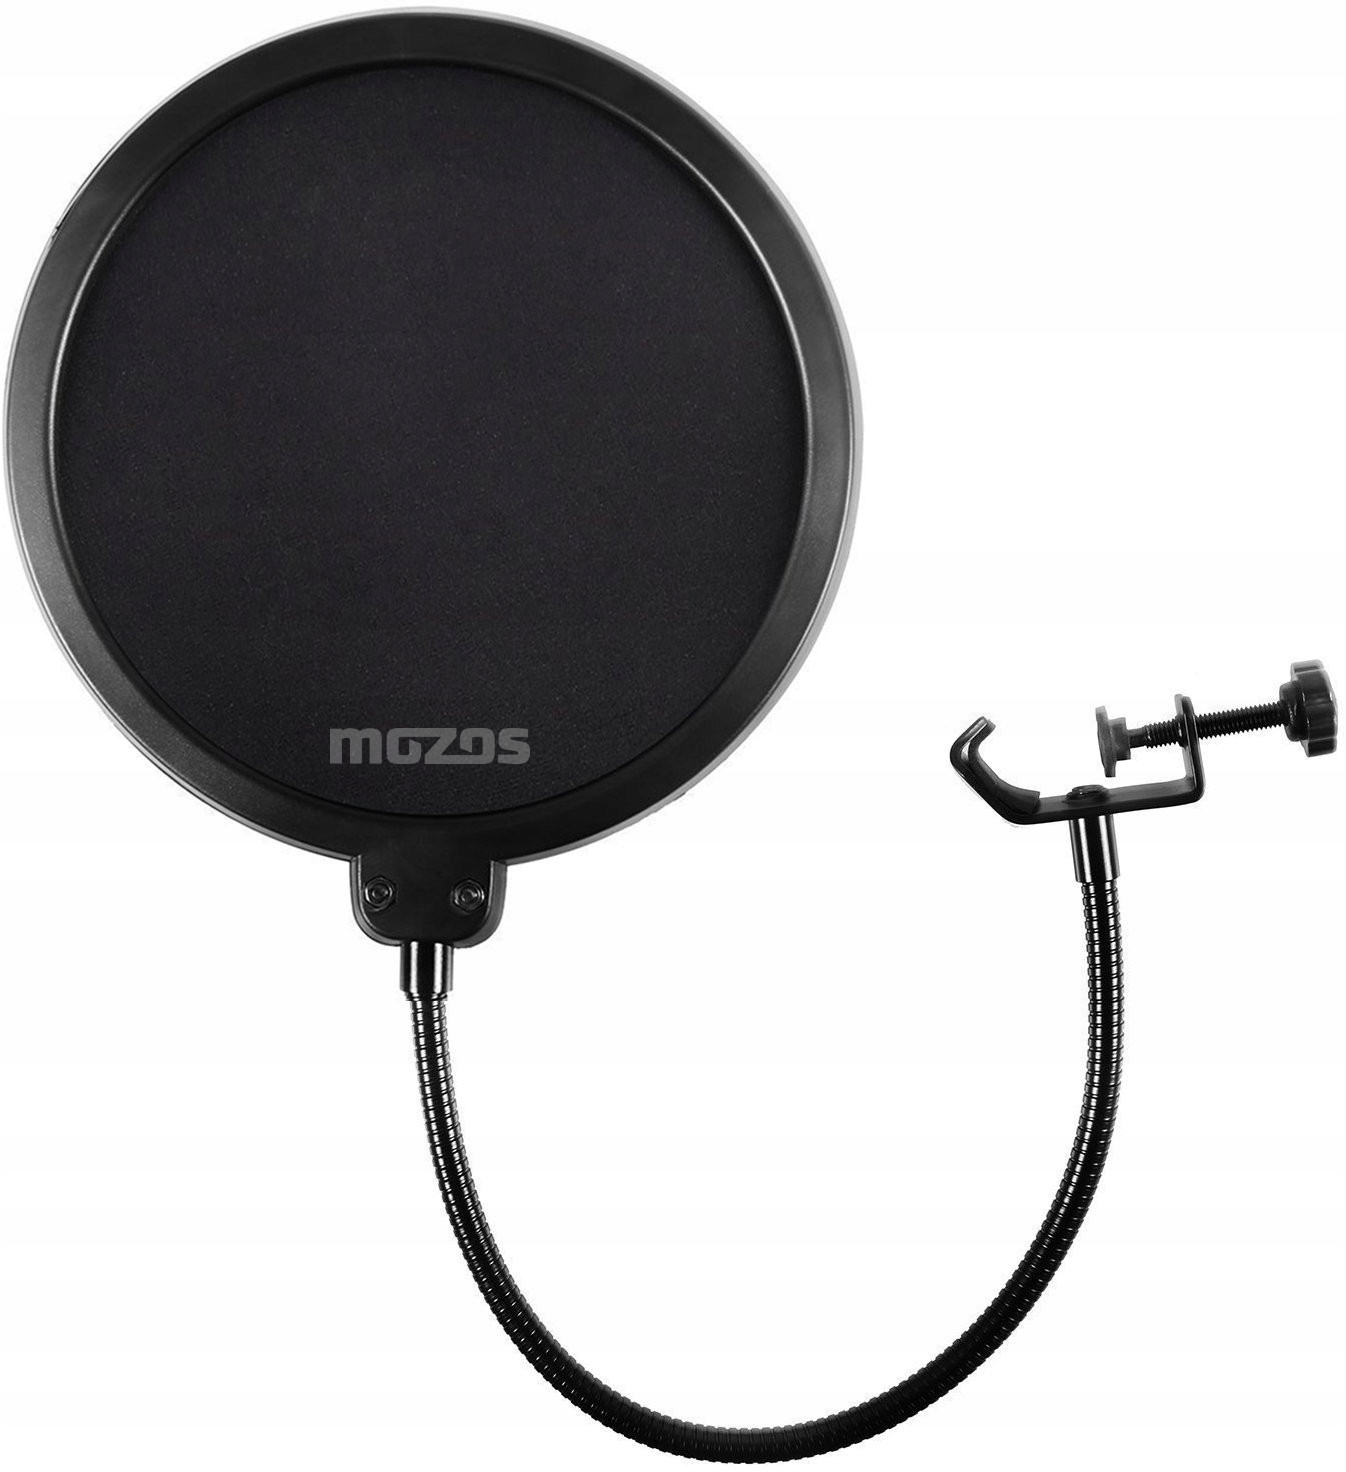 Item STUDIO POP SHIELD FILTER FOR MICROPHONE PS1 COVER